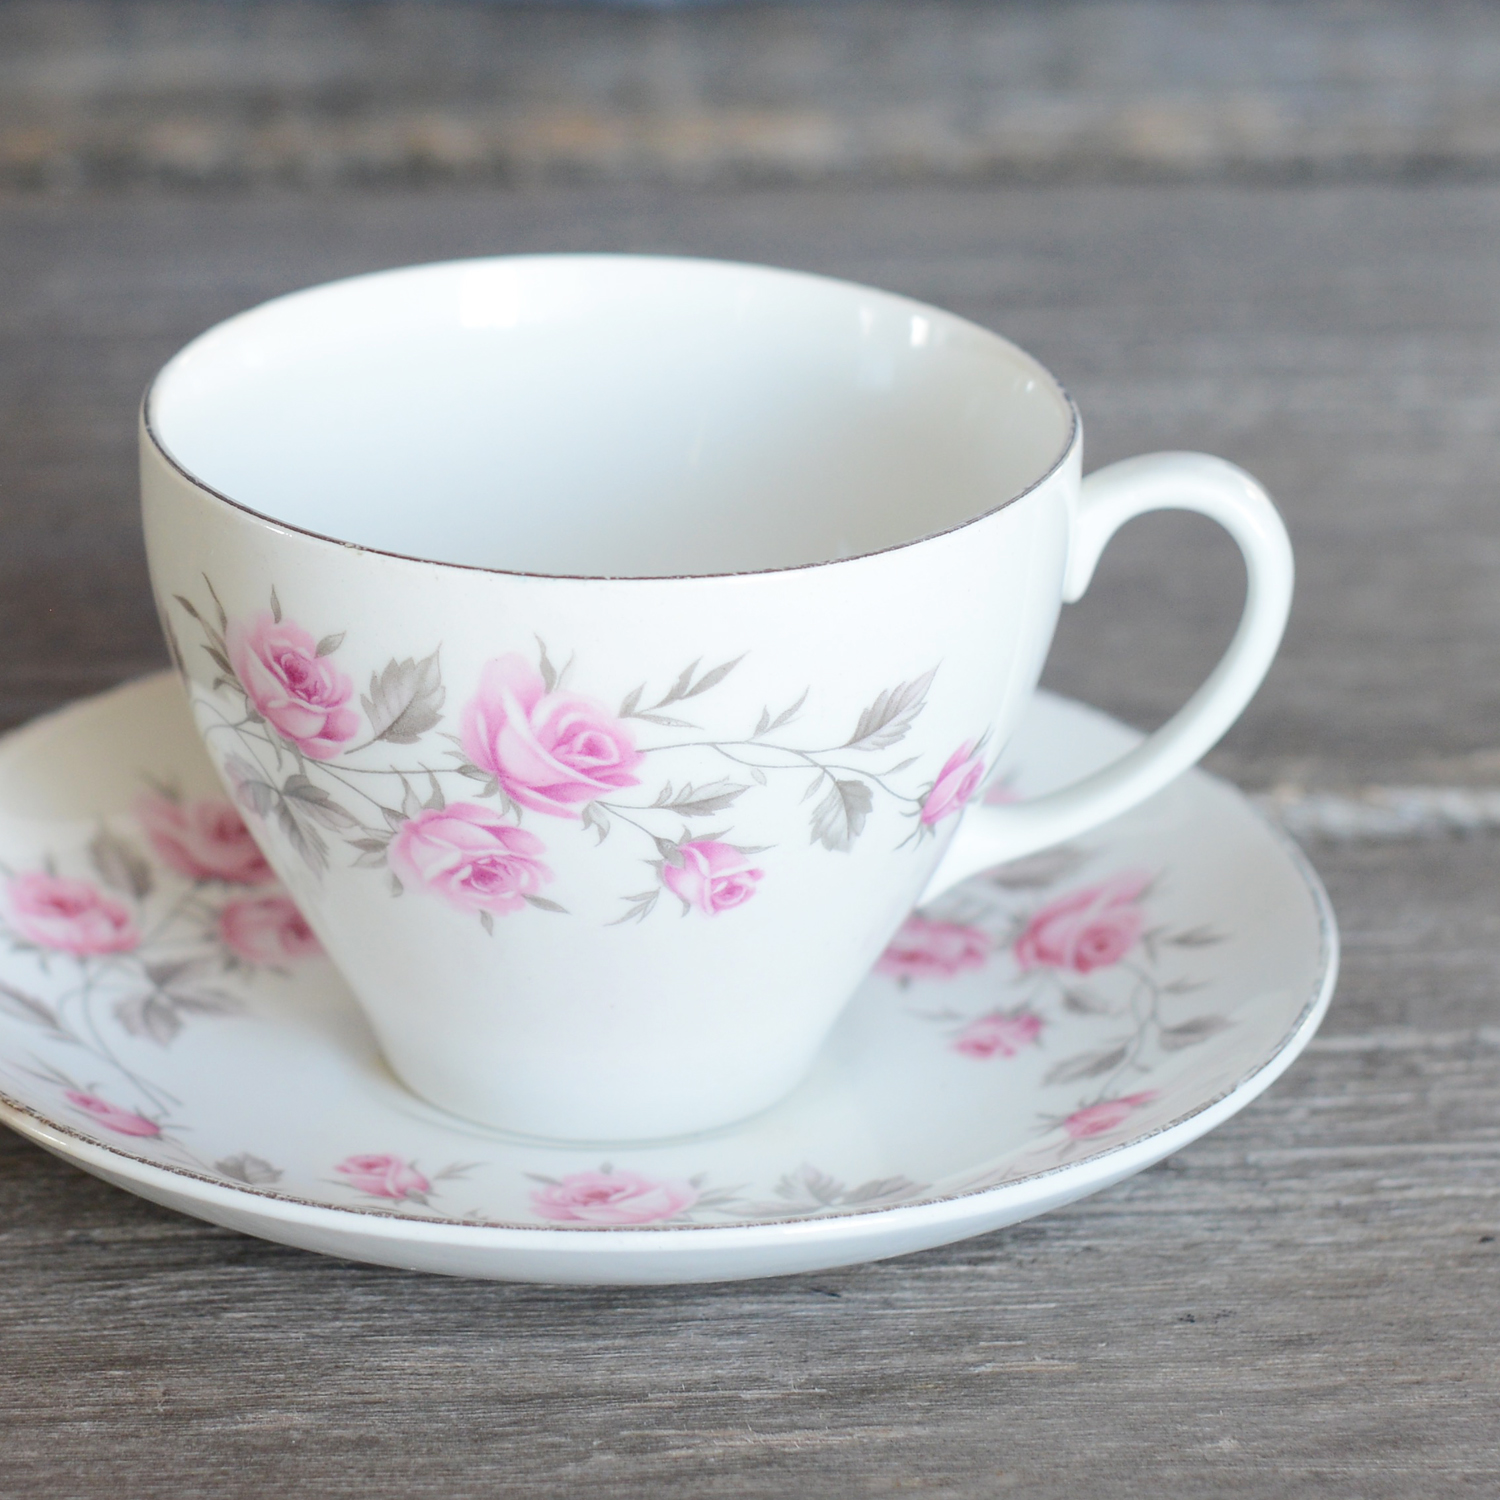 dowson tea cup and saucer